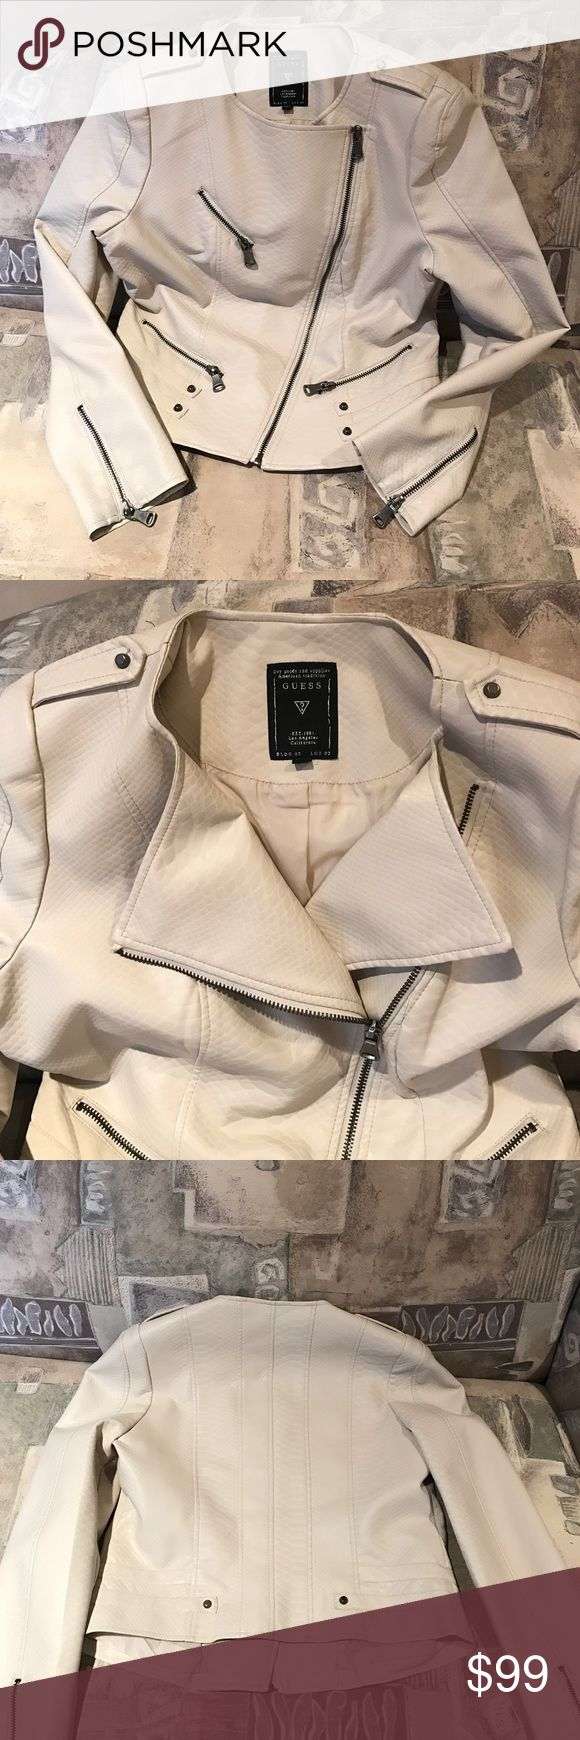 """🆕💋 Guess Moto Jacket PERFECT Faux leather cream colored reptile embossed jacket. Fully lined & machine washable! 😱 Front collar to bottom measures 19 1/2"""". Chest is 19 3/4"""" flat. Sleeve from top of shoulder to end is 25"""". Back measures 19"""". Brushed silver accents and zippers. Please ask questions, I'm happy to answer 😃👍💋 Price firm unless bundled! 😉💖 Guess Jackets & Coats"""